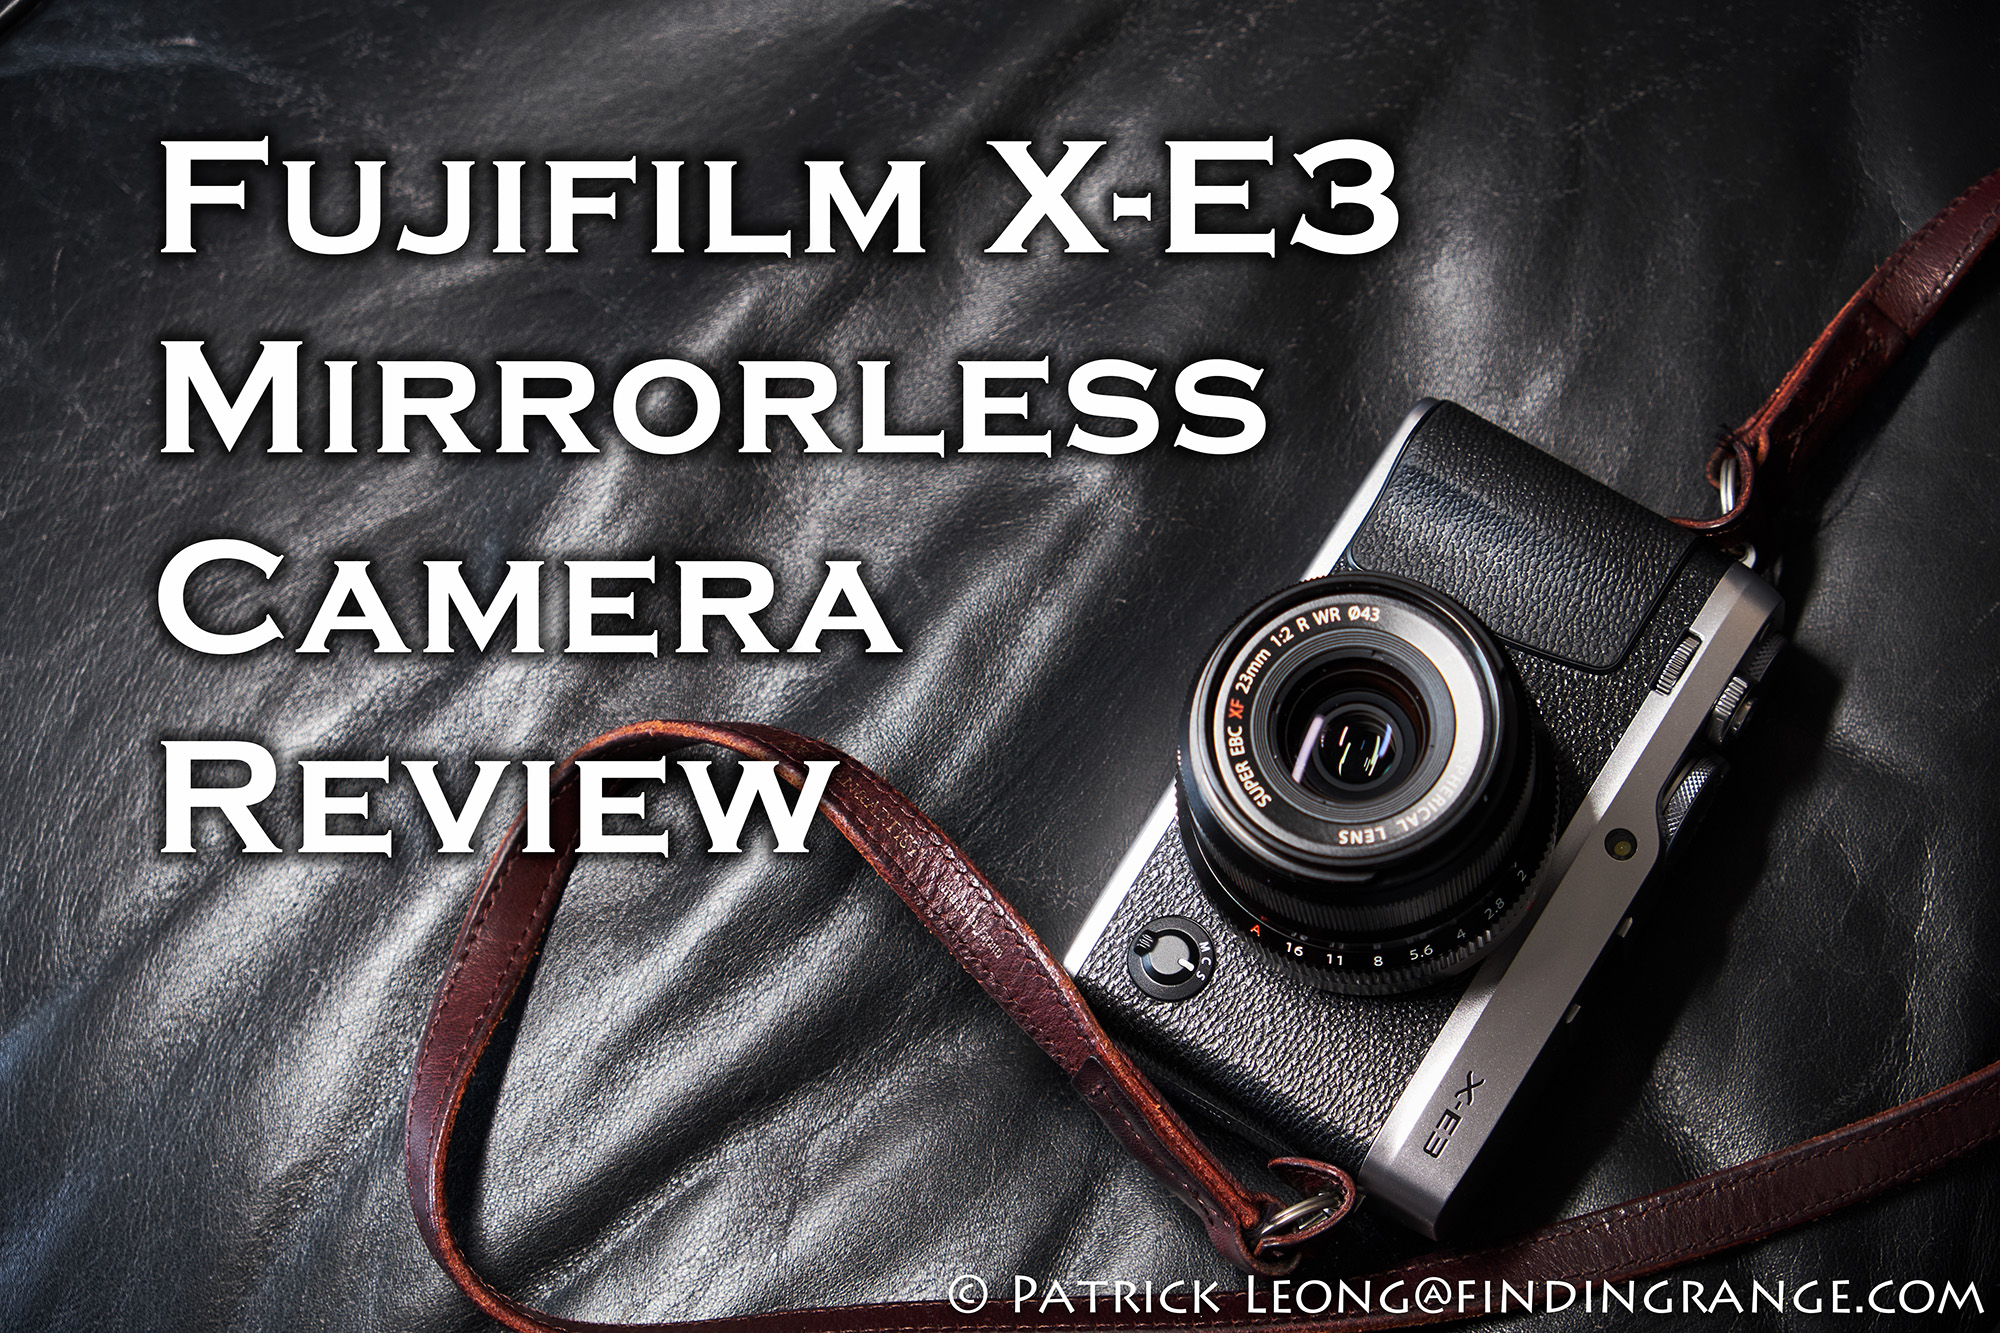 Fujifilm X-E3 Mirrorless Camera Review